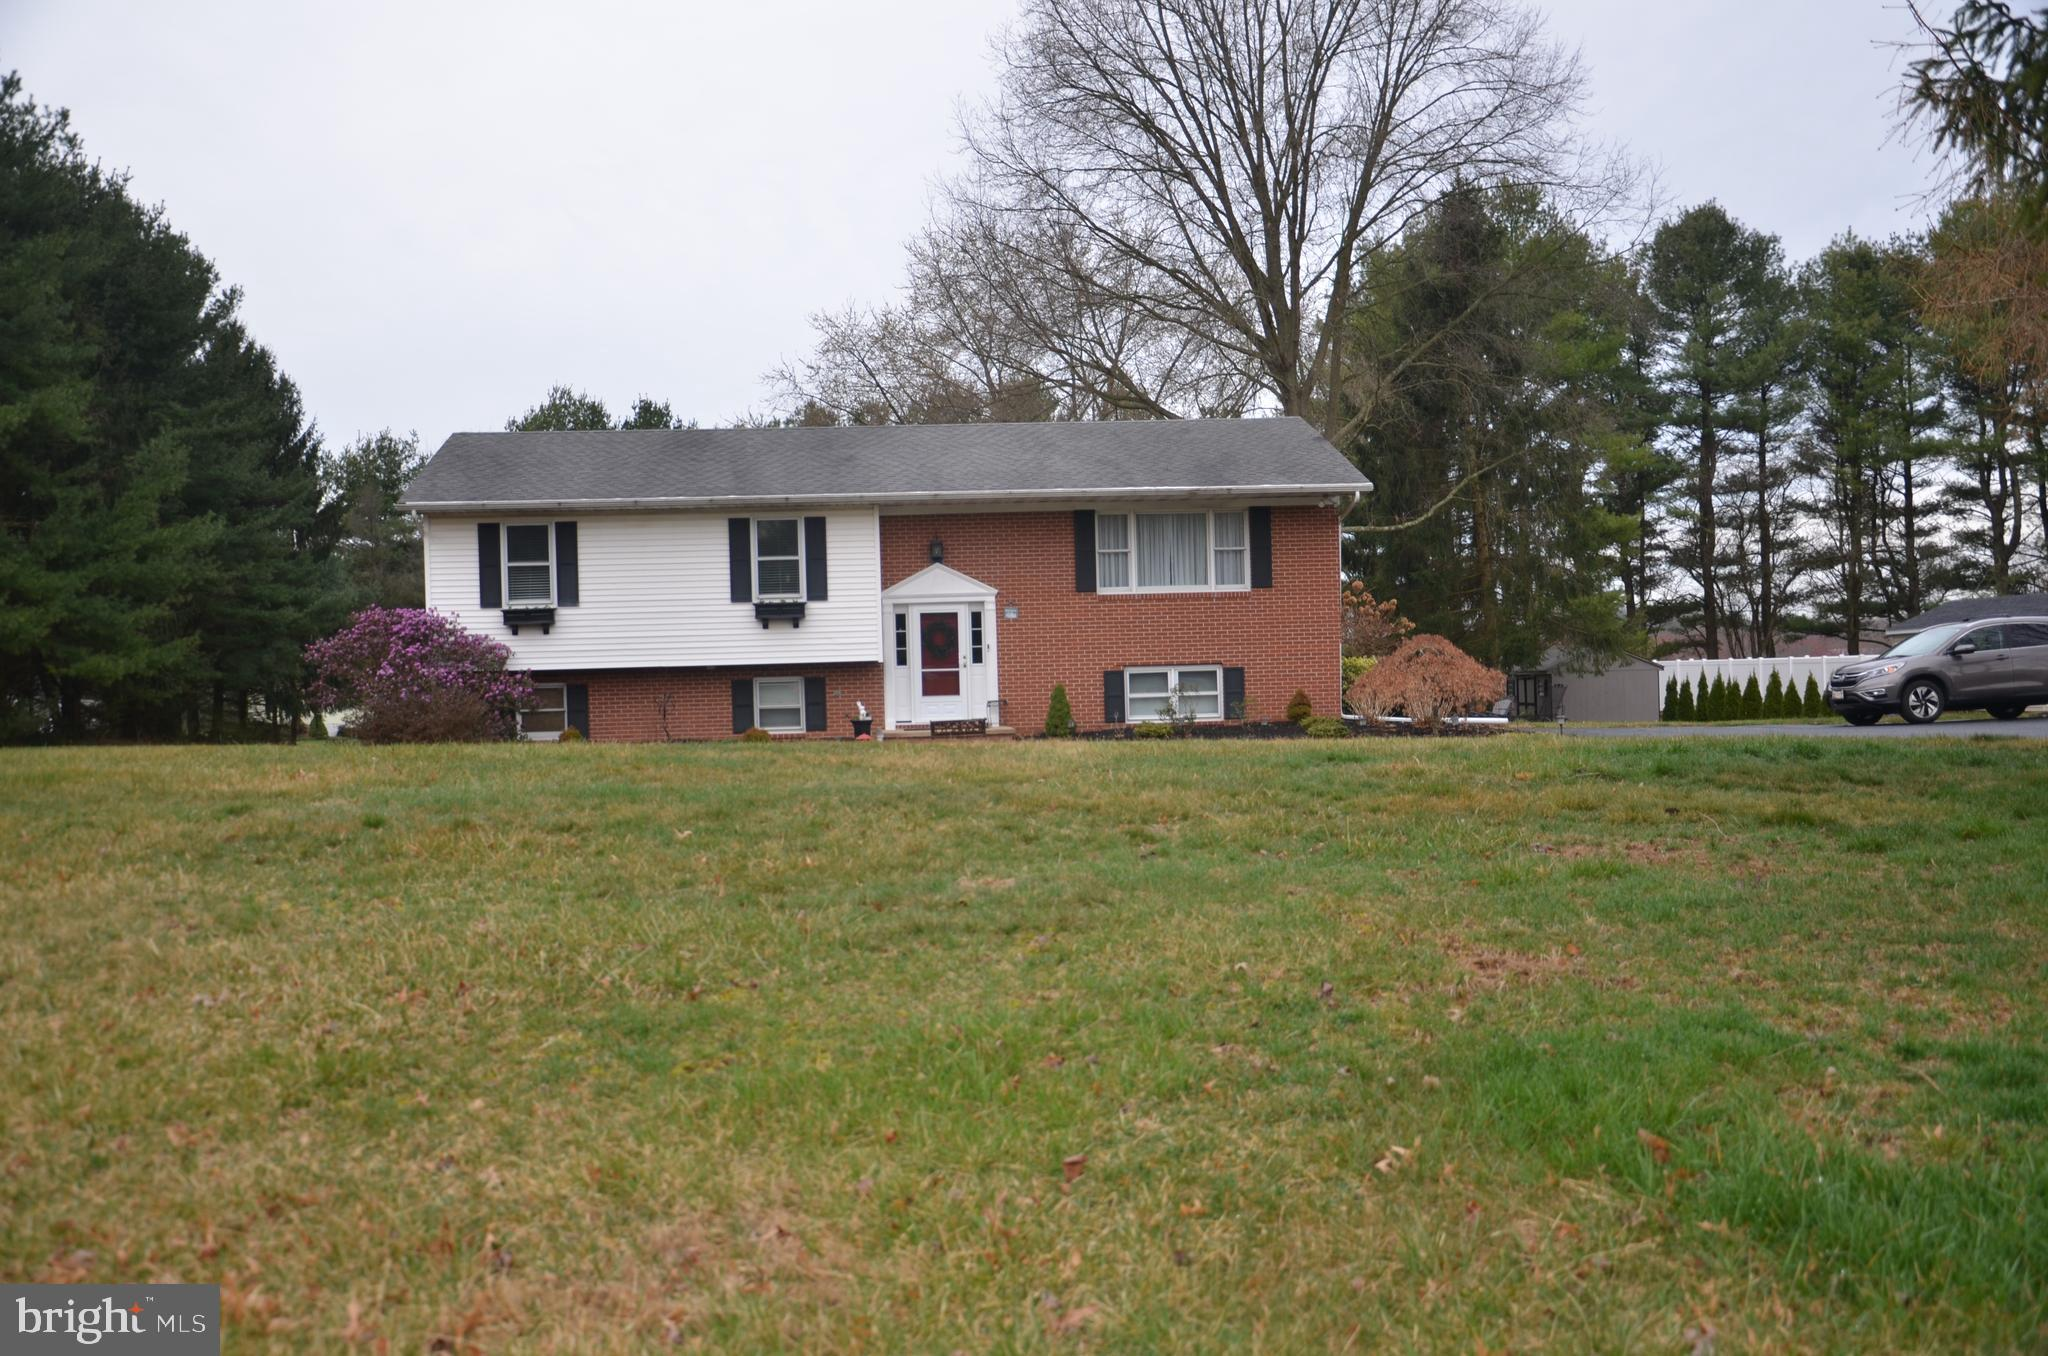 19704 TRUNK ROAD, WHITE HALL, MD 21161